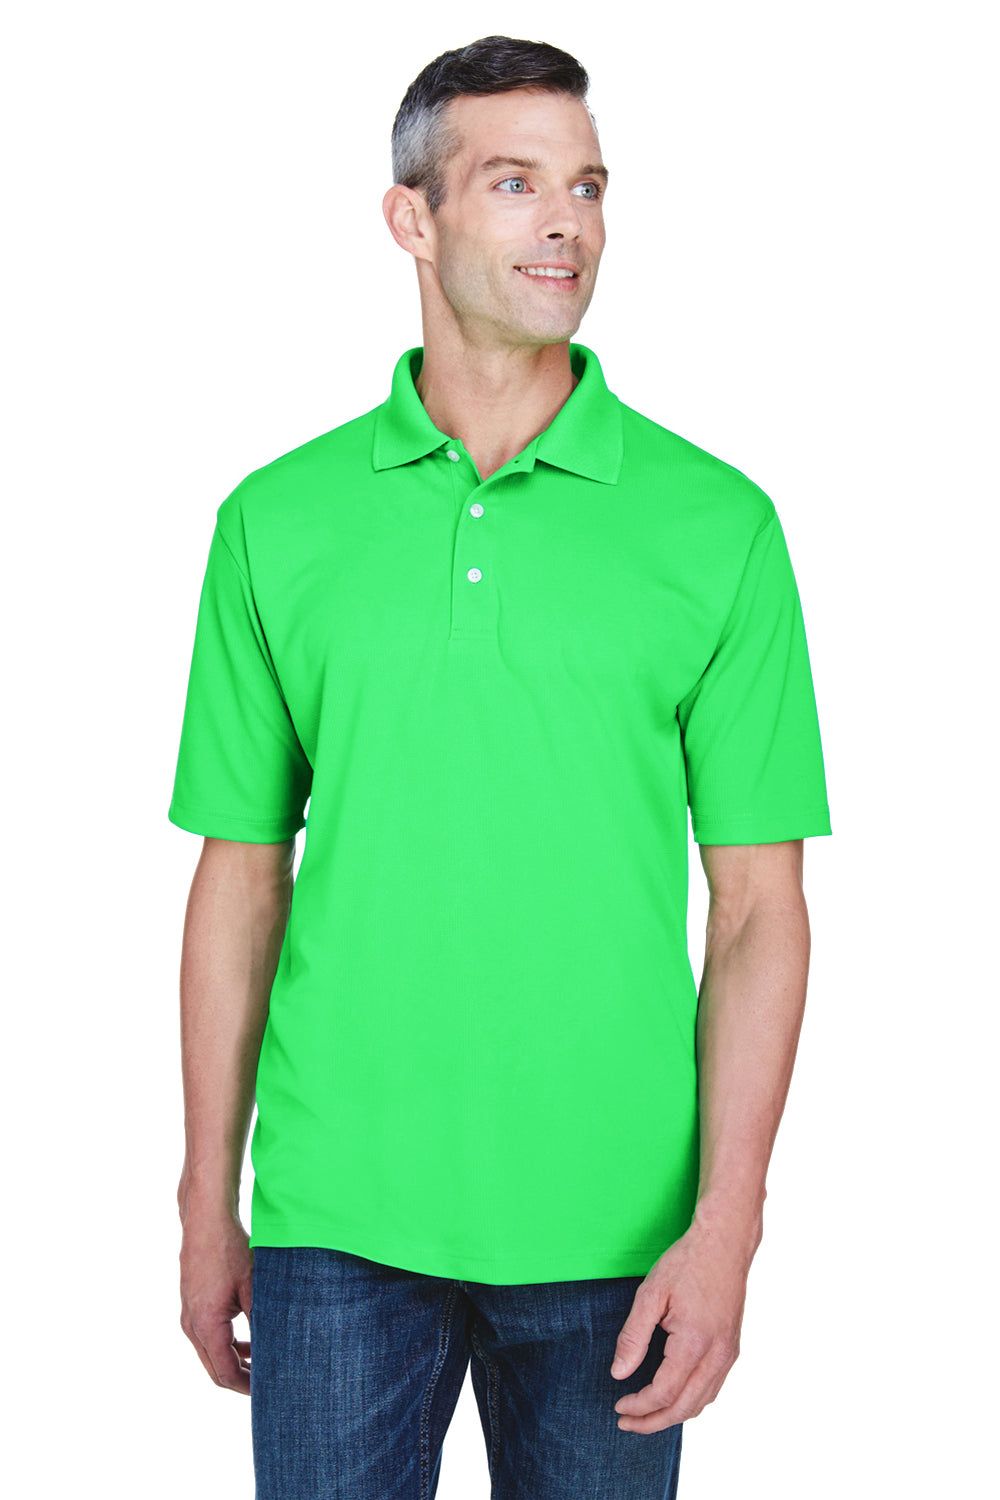 UltraClub 8445 Mens Cool & Dry Performance Moisture Wicking Short Sleeve Polo Shirt Cool Green Front